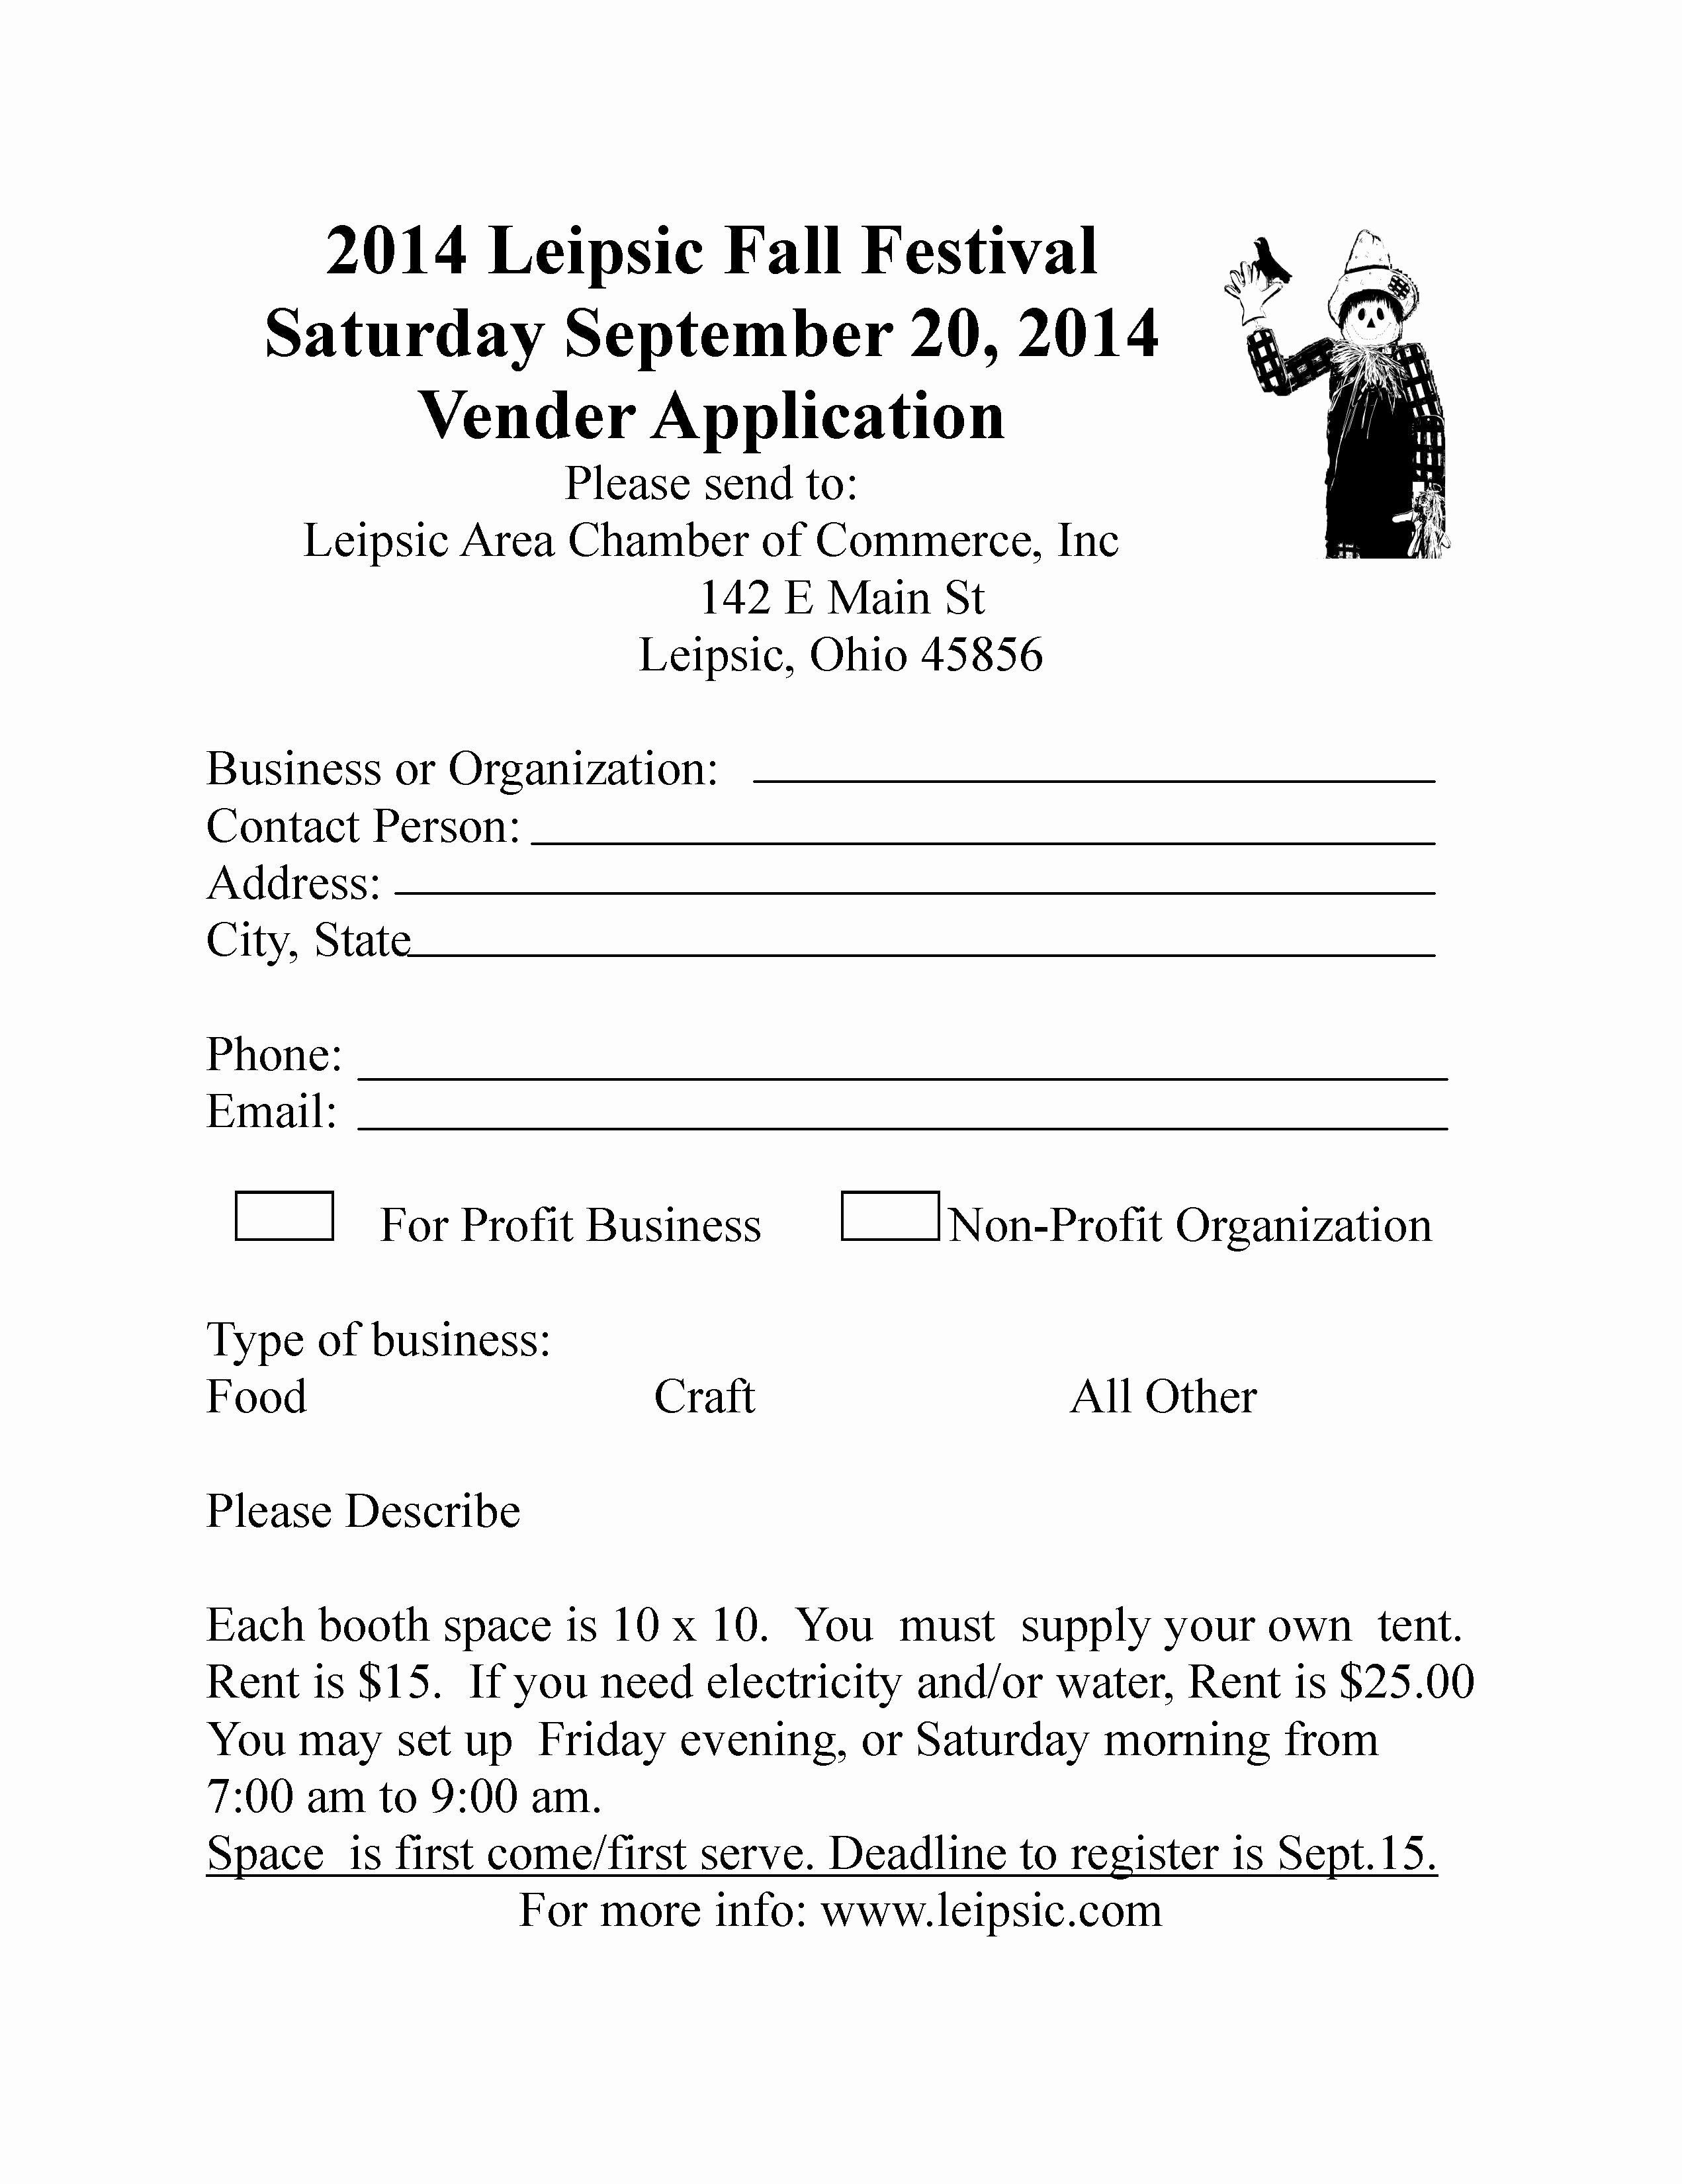 Vendor Information form New Leipsic Fall Festival